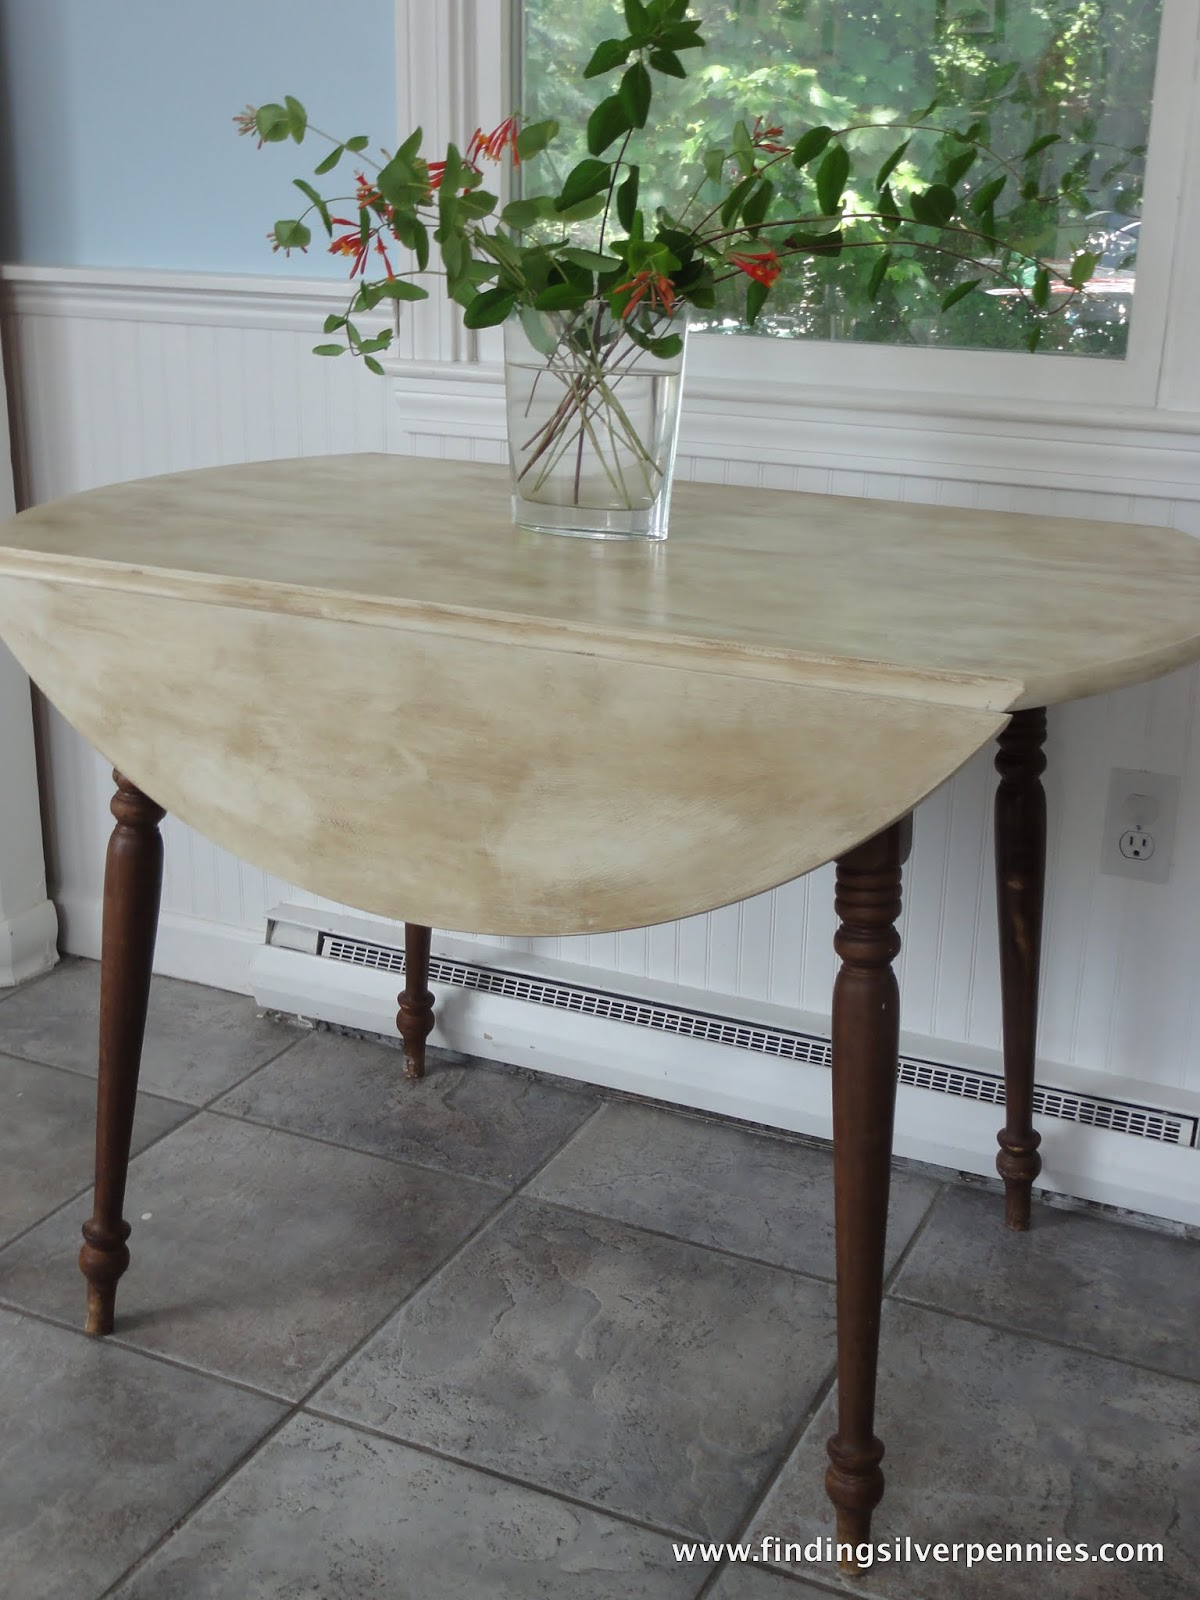 Old White Table With Rustic Finish